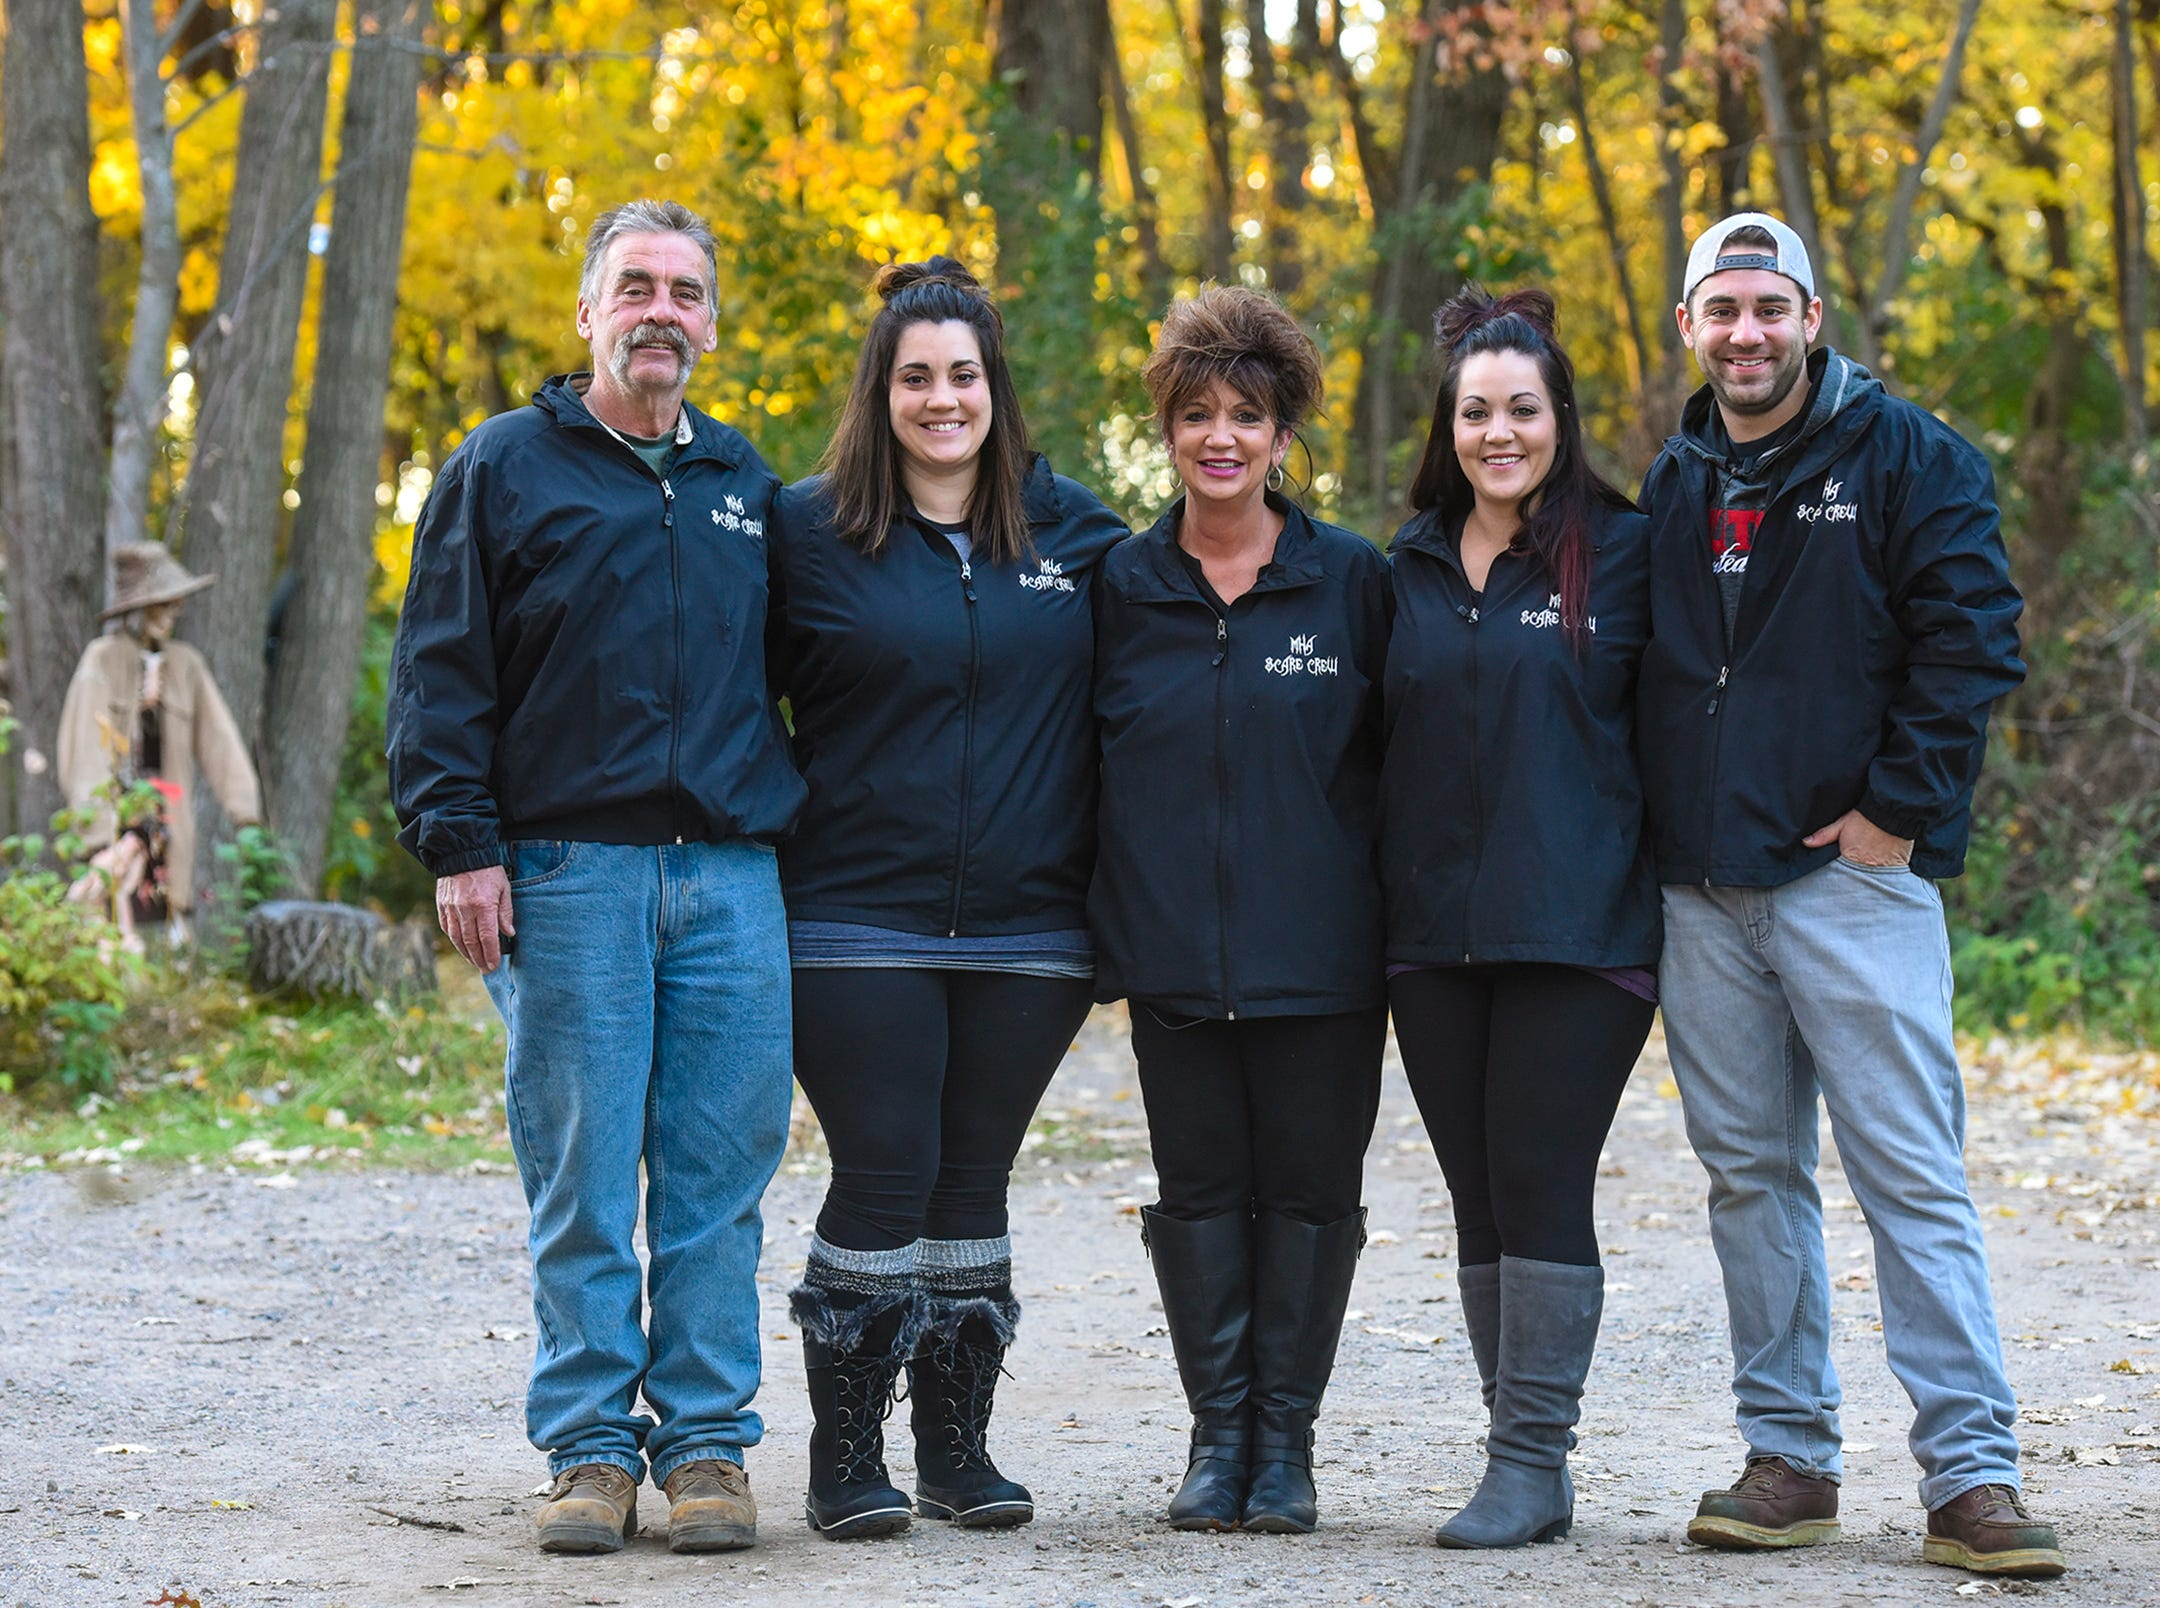 The Molitors, Ron, Cara, Tammy, Caden and Ron II, are pictured Thursday, Oct. 18, at Molitor's Haunted Acres in Sauk Rapids.